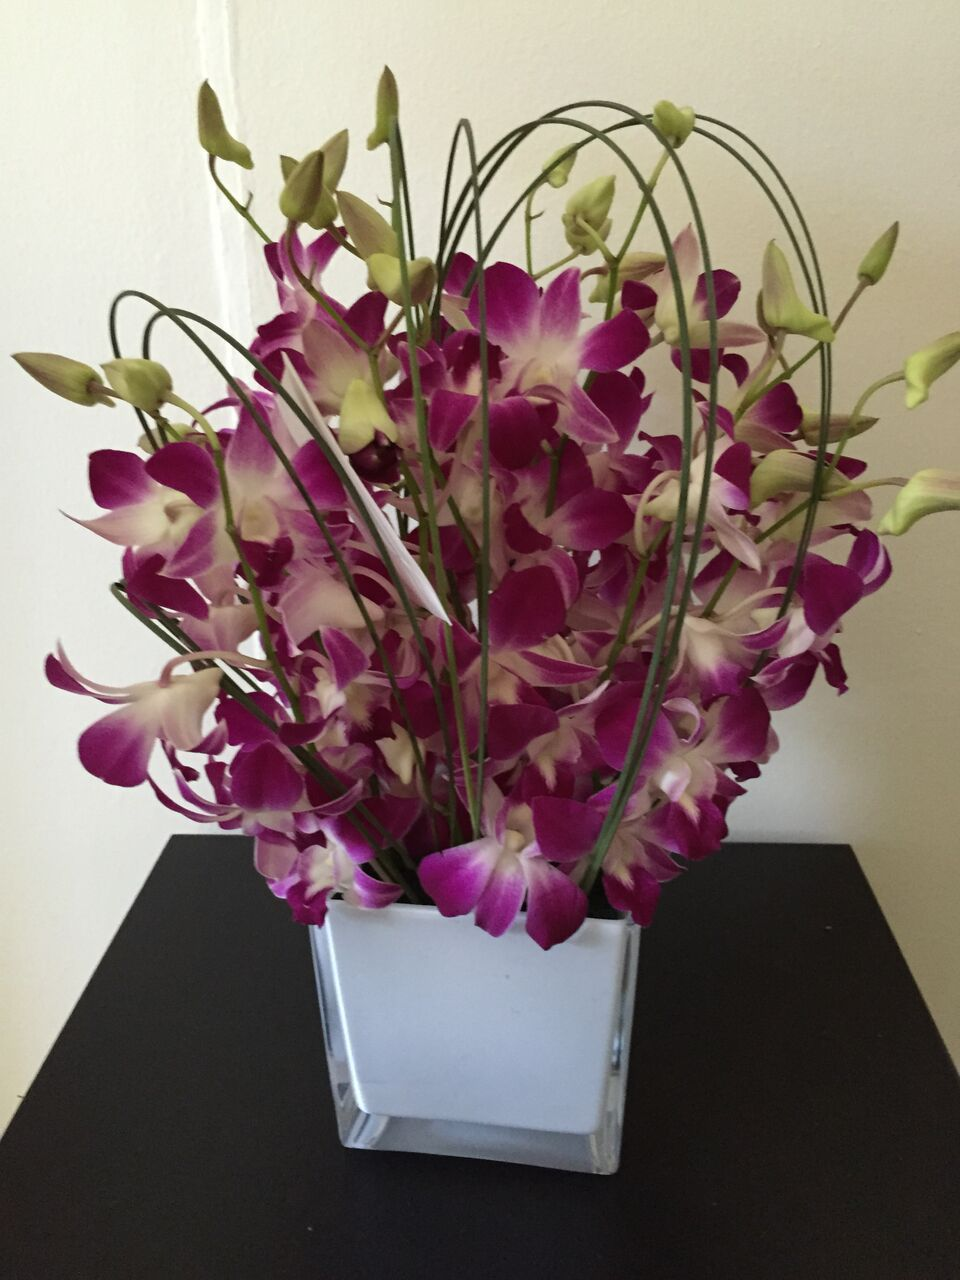 Our Range Of Orchids Come In A Variety Of Colours To Put A Smile On The Face Of Your Special Orchids Are Beautiful And Flower Delivery Orchid Flower Orchids